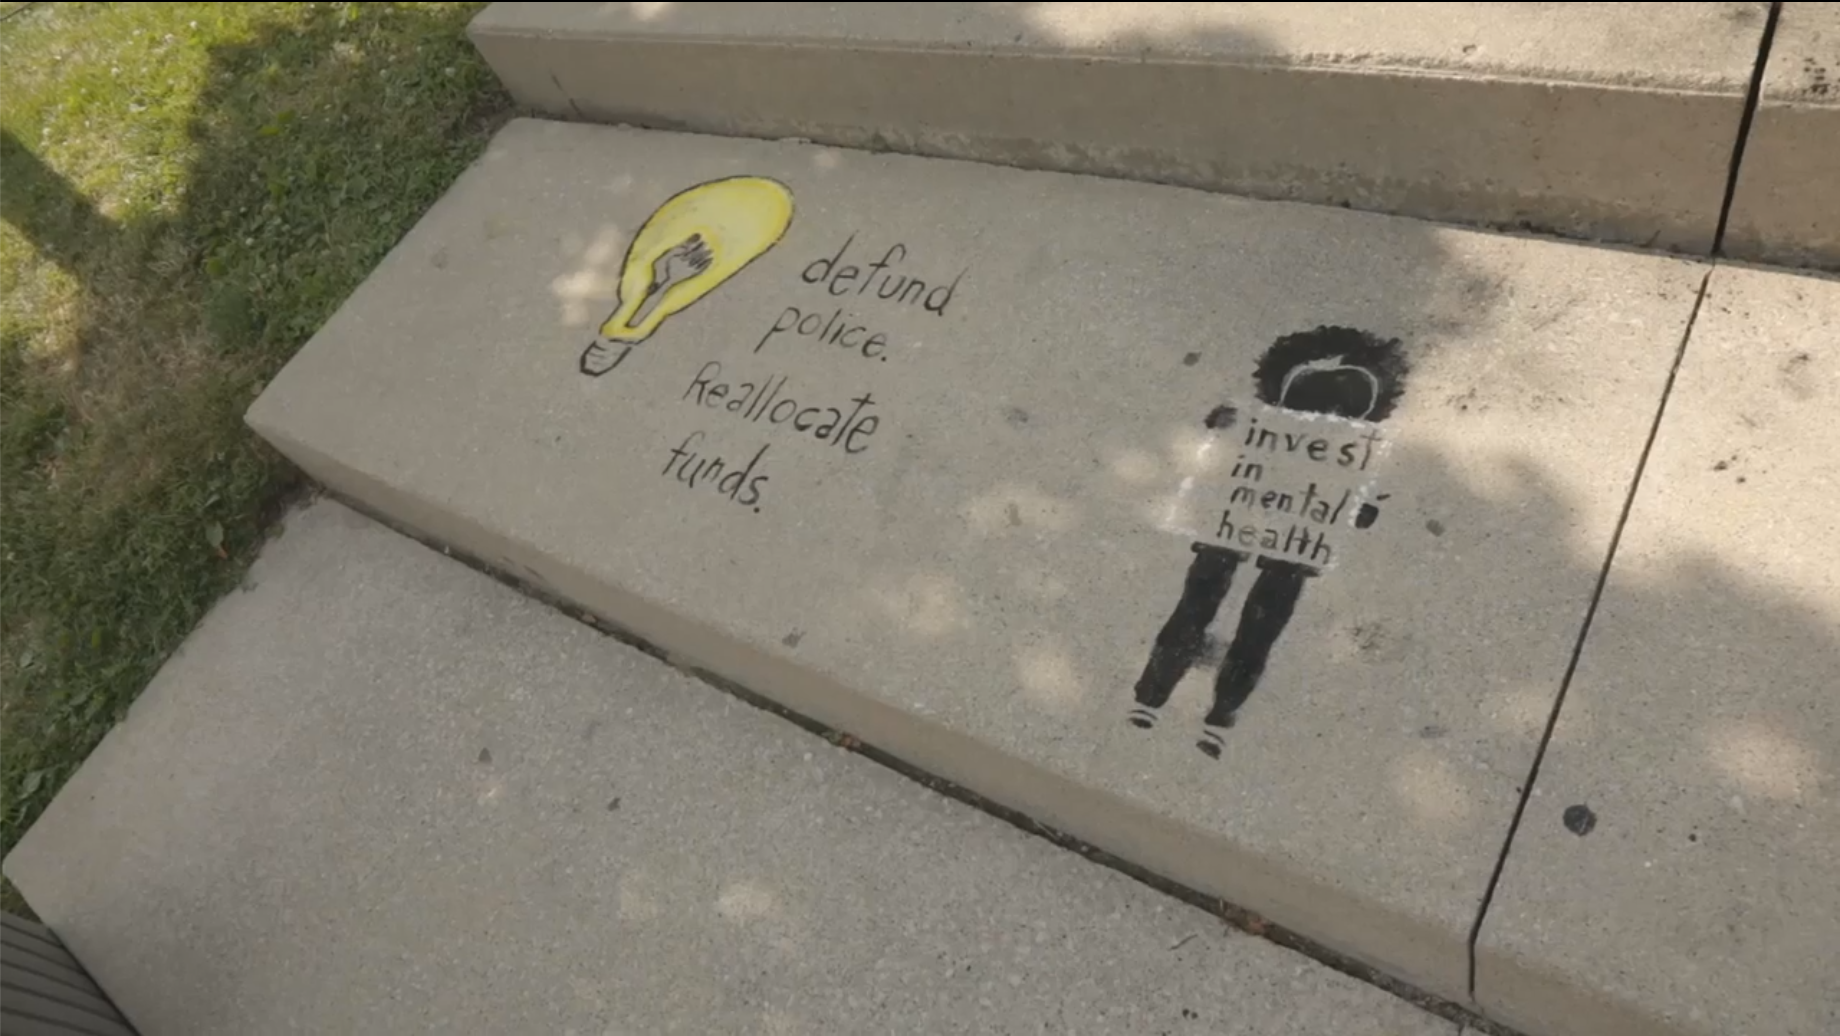 St. Thomas Chalk Artist Tattoos London City Hall because Black Lives Matter